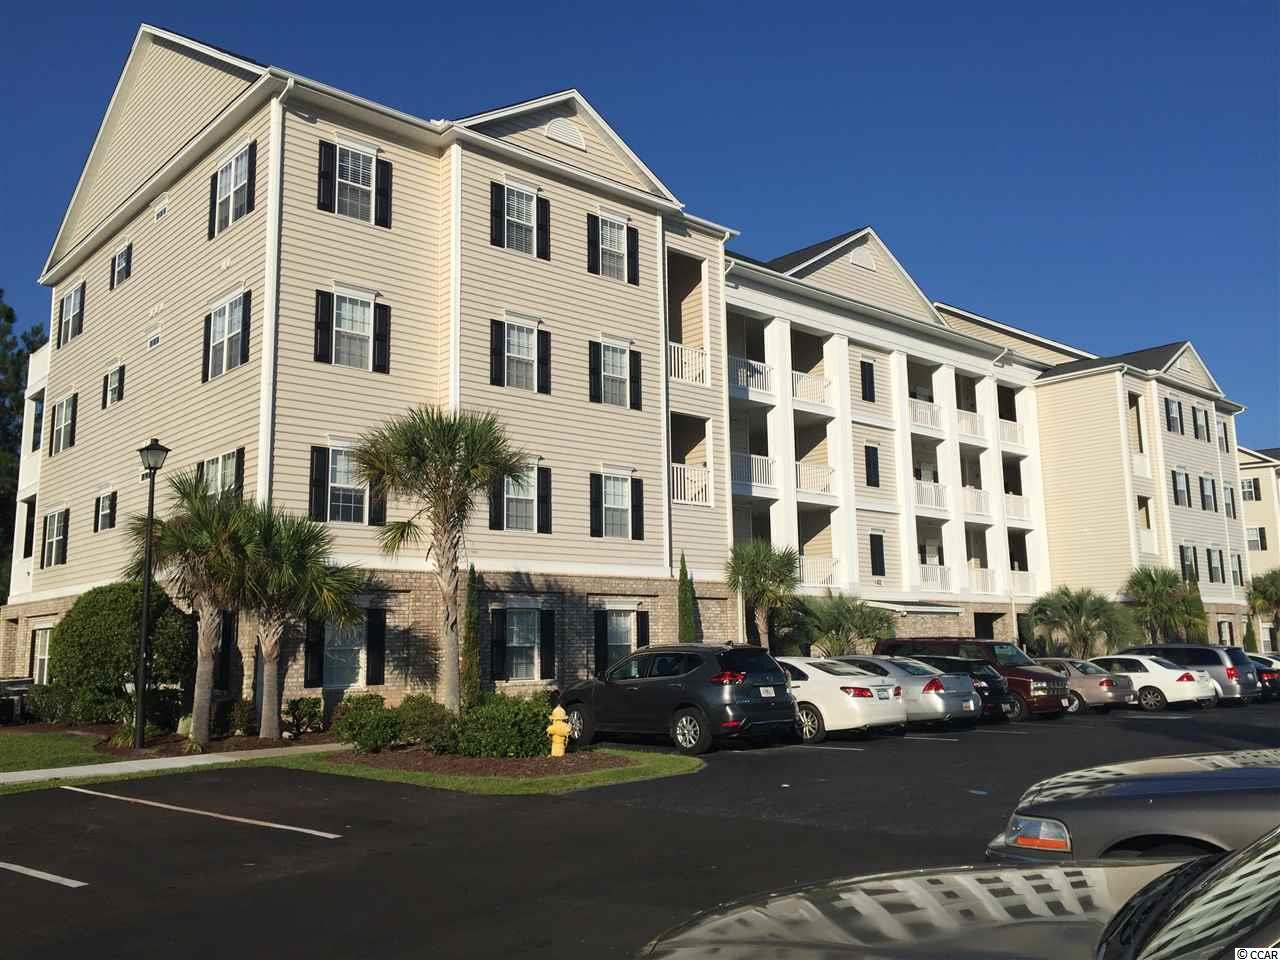 MLS#:1716629 Mid-Rise 4-6 Stories 703 Shearwater Court